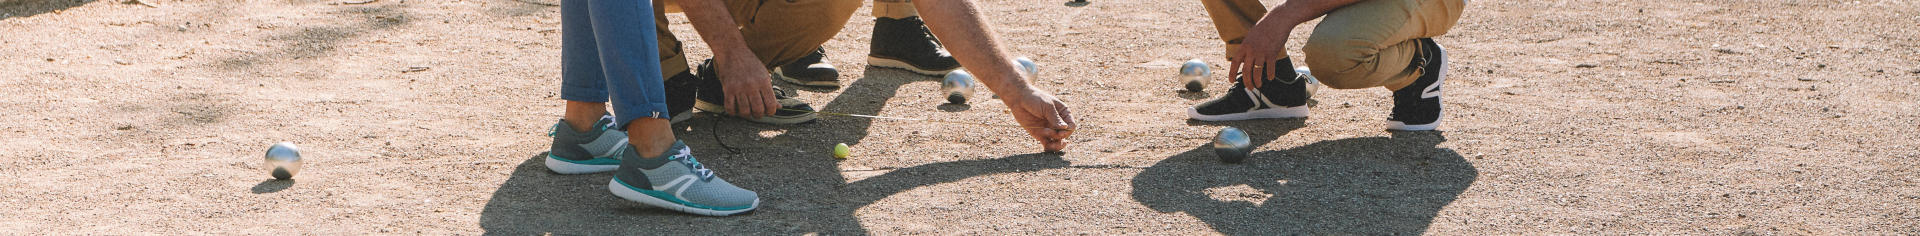 compter-points-partie-pétanque